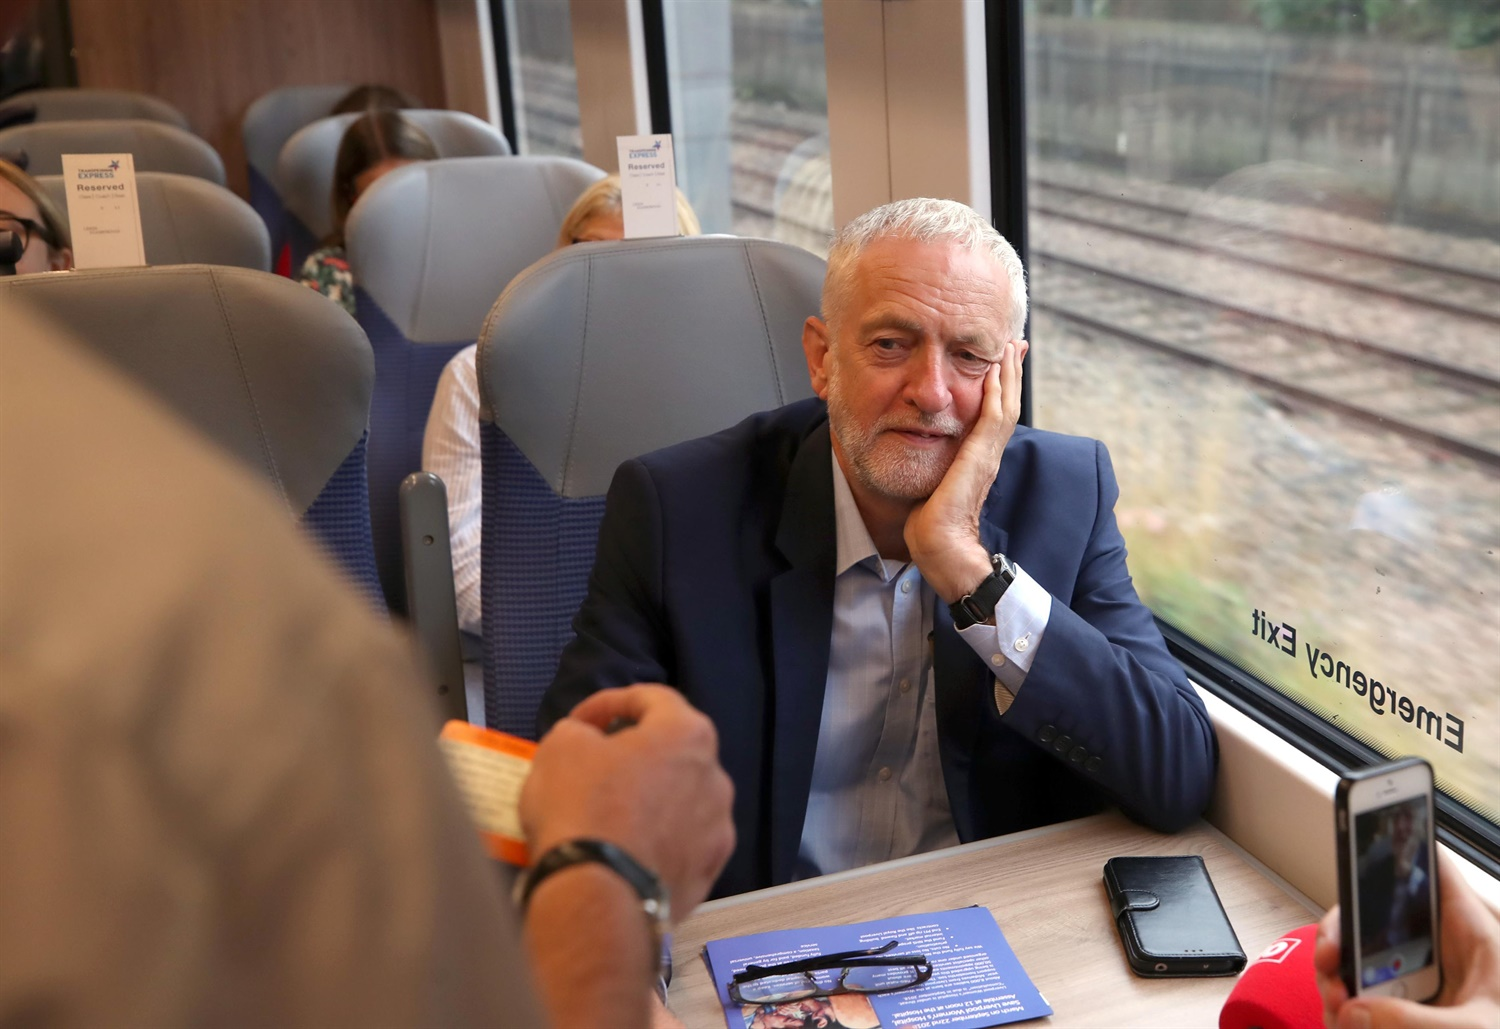 Corbyn pledges £10bn for Northern Crossrail project